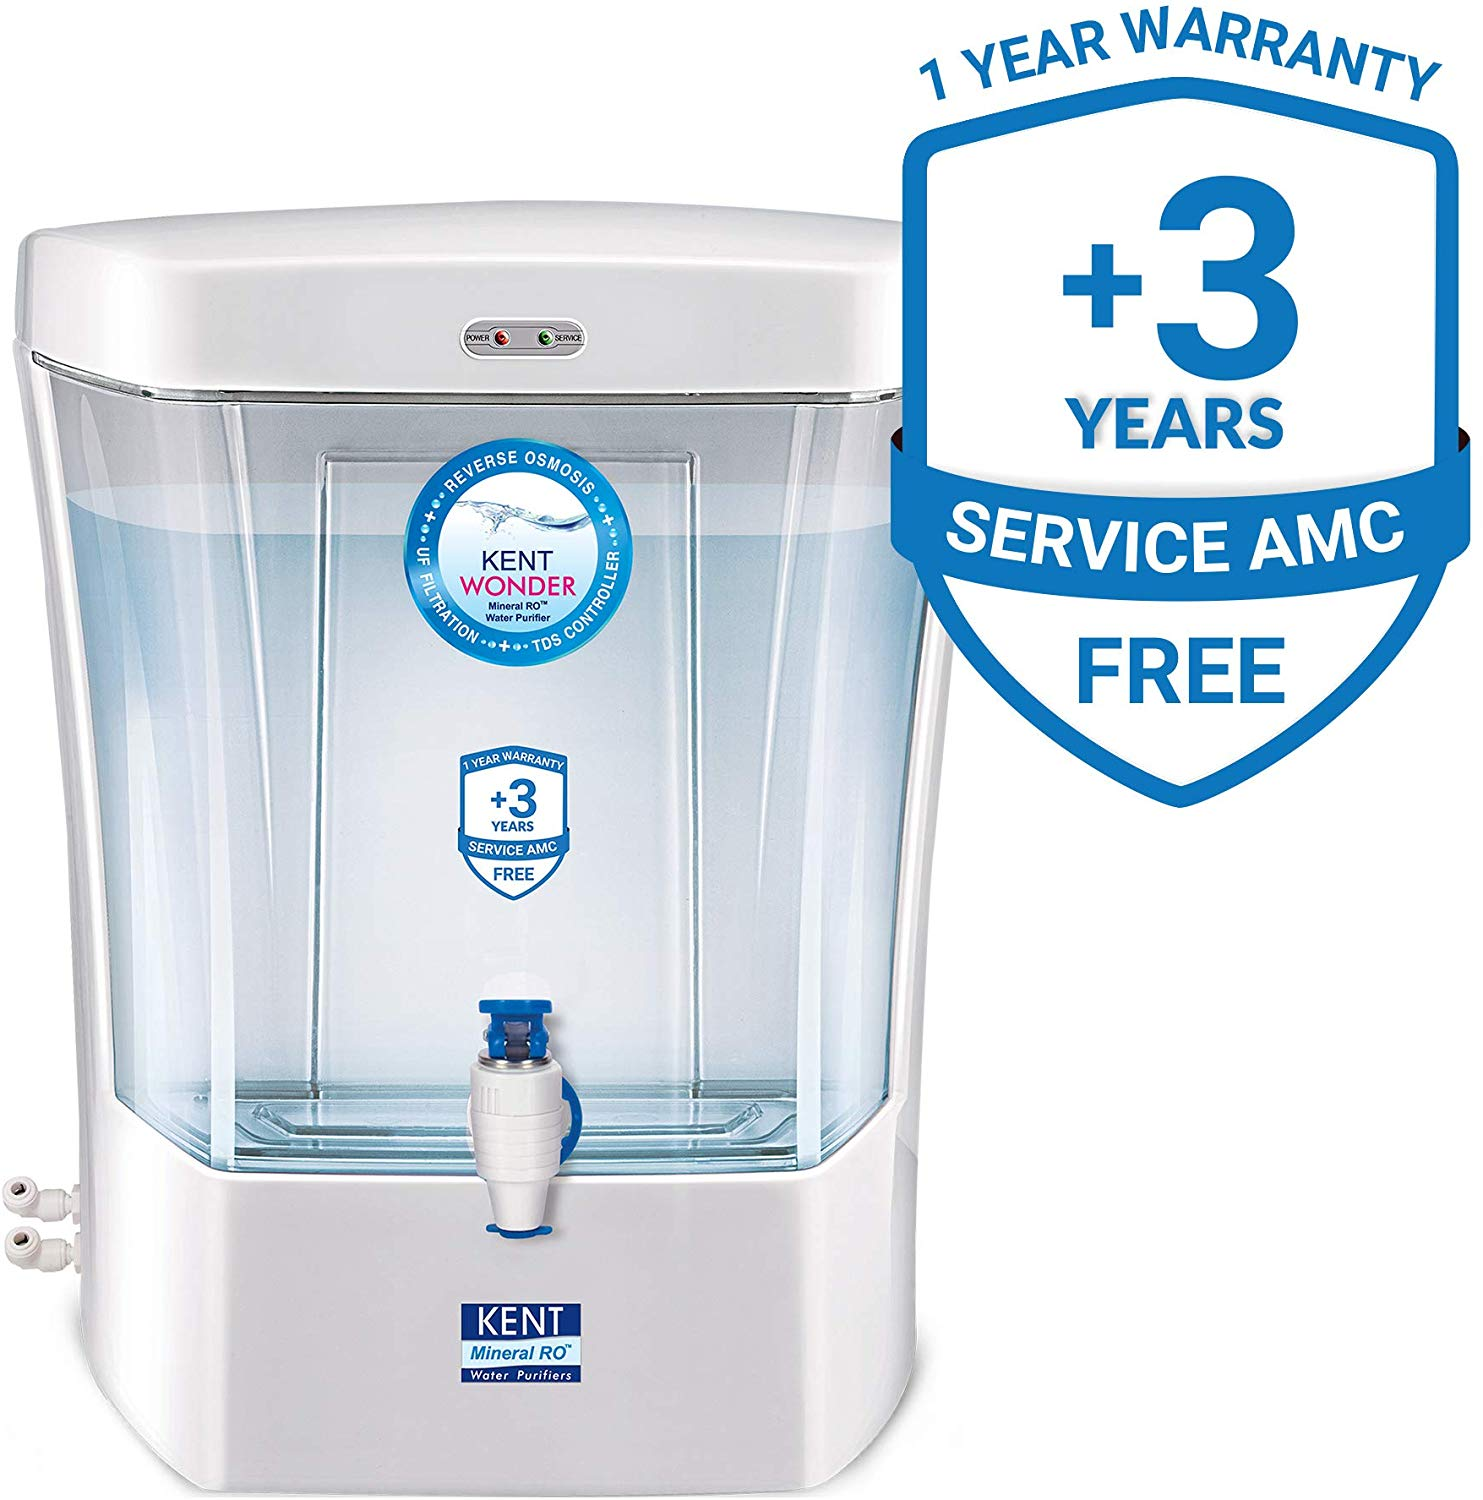 KENT Wonder 7-Litres Wall-mounted / Counter-top RO Water Purifier